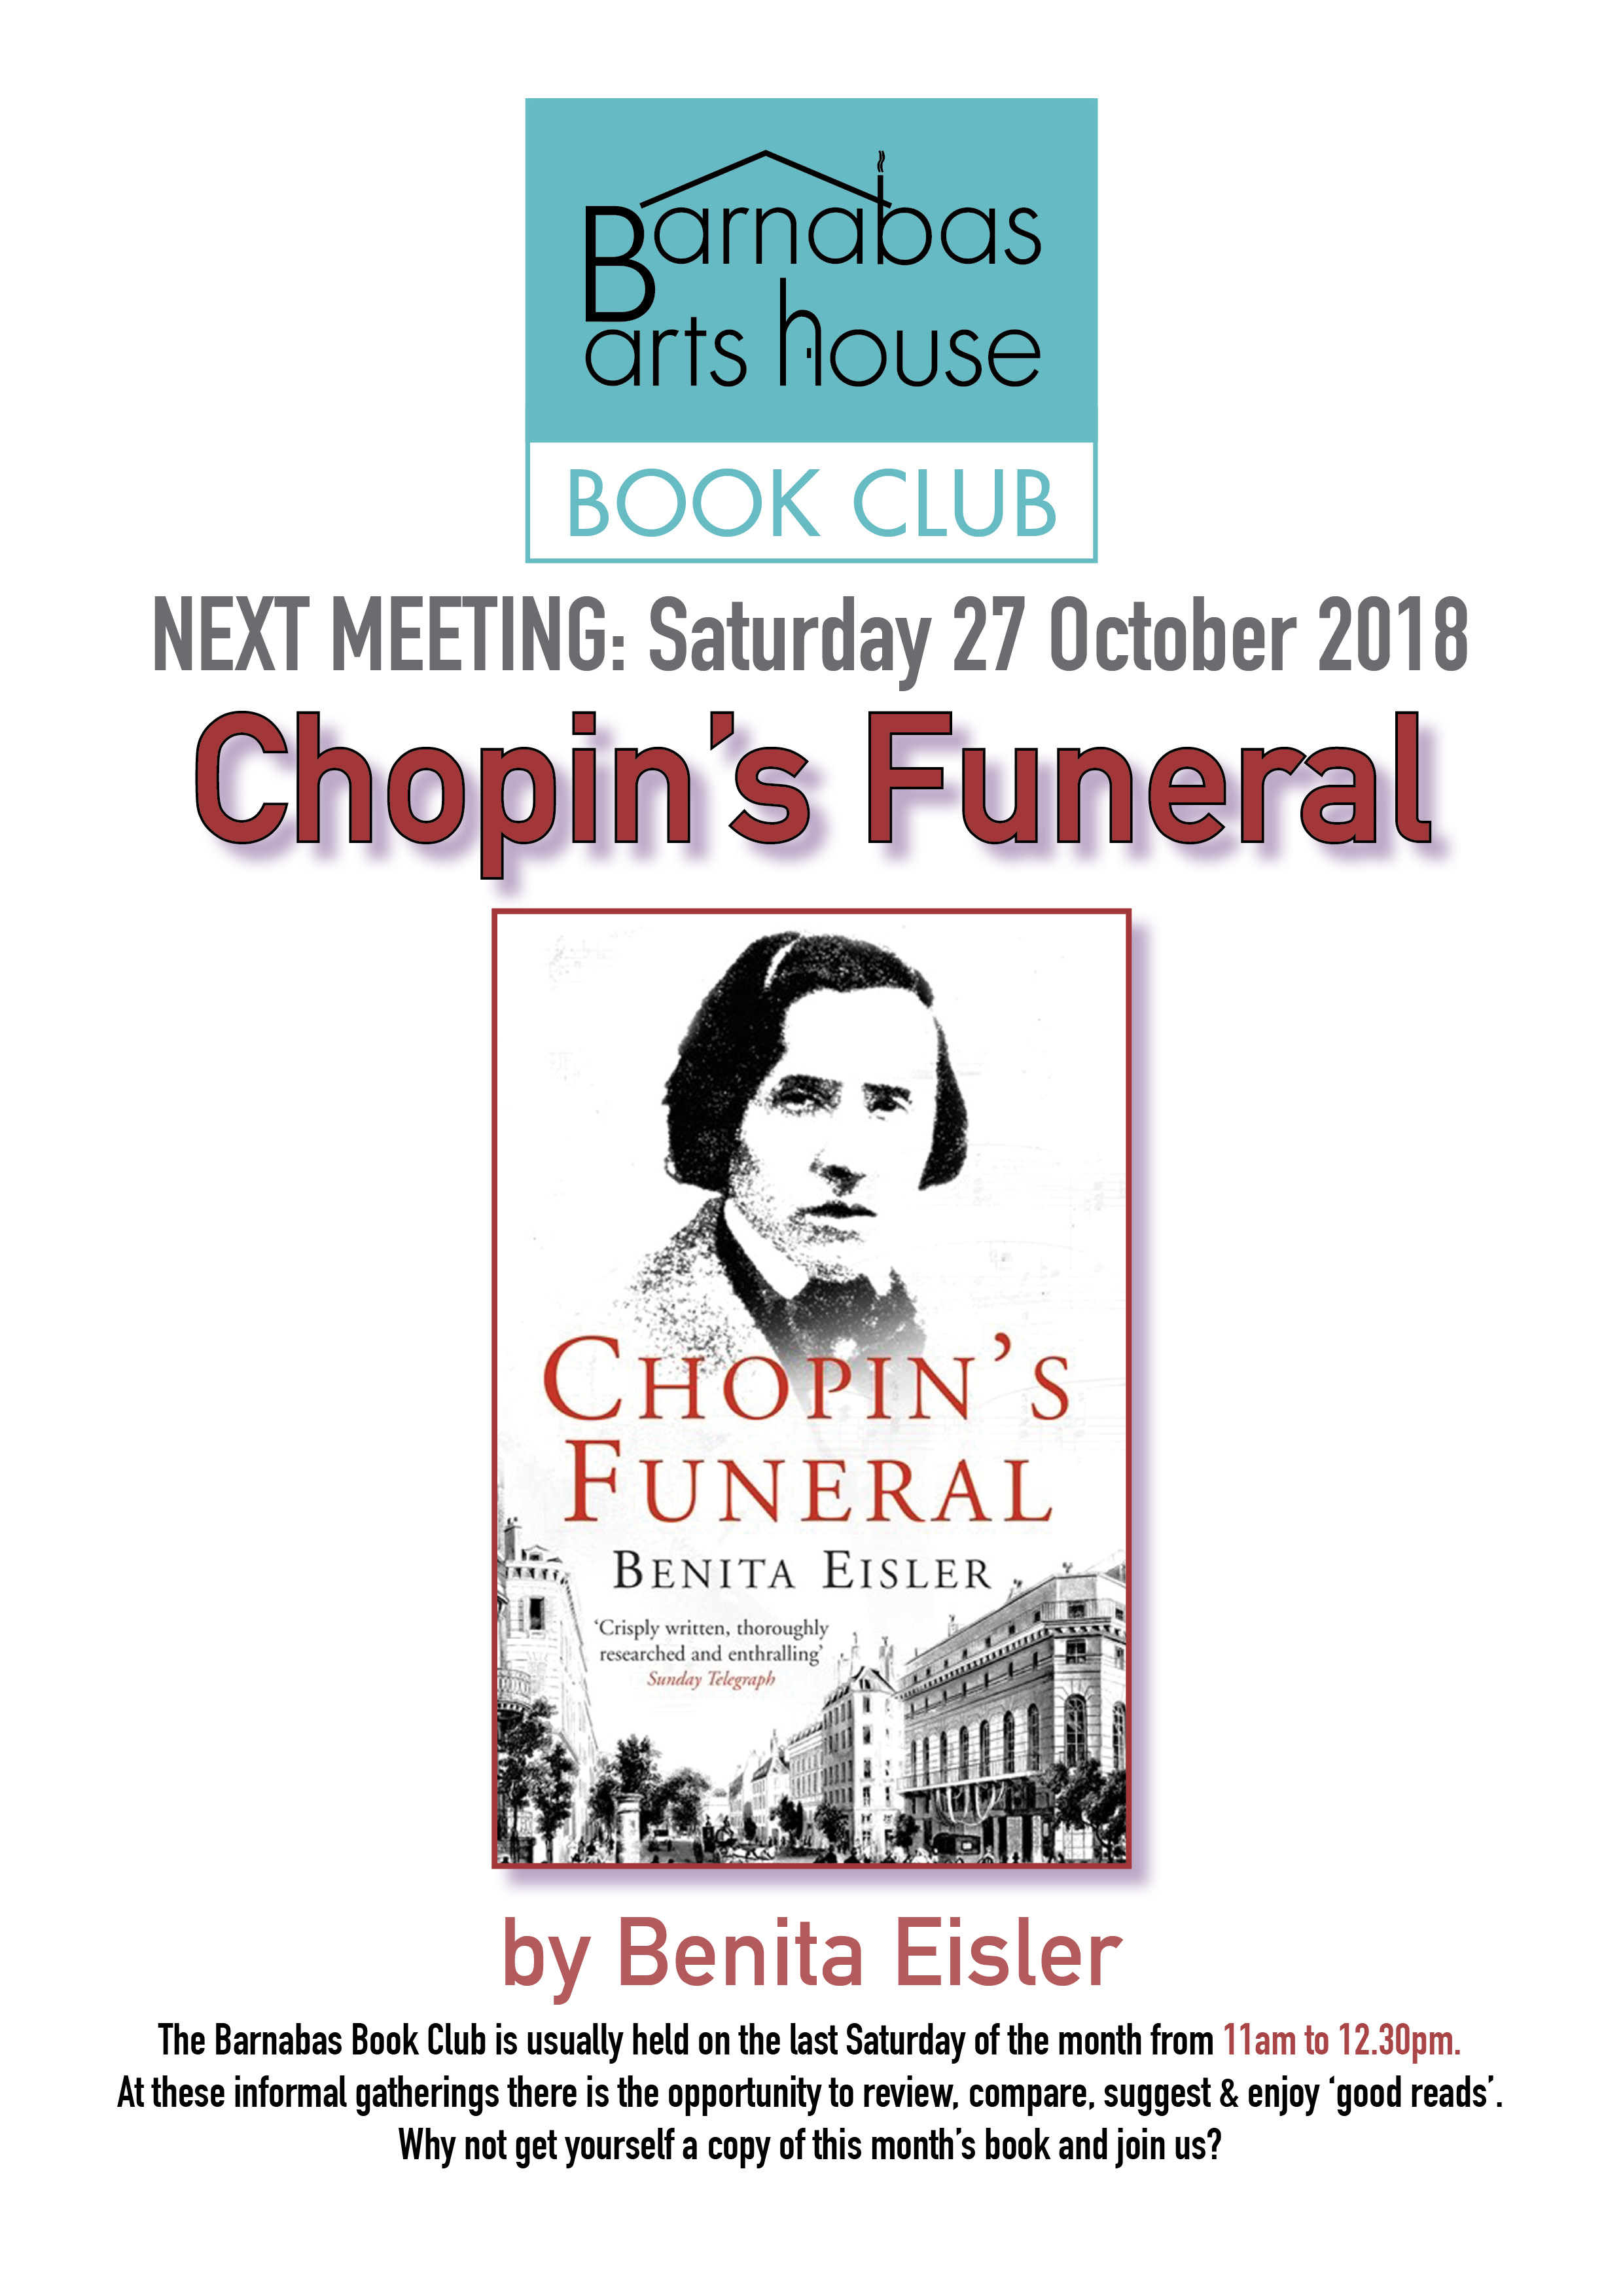 Barnabas Book Club-Chopin's Funeral @ Barnabas Arts House | Wales | United Kingdom